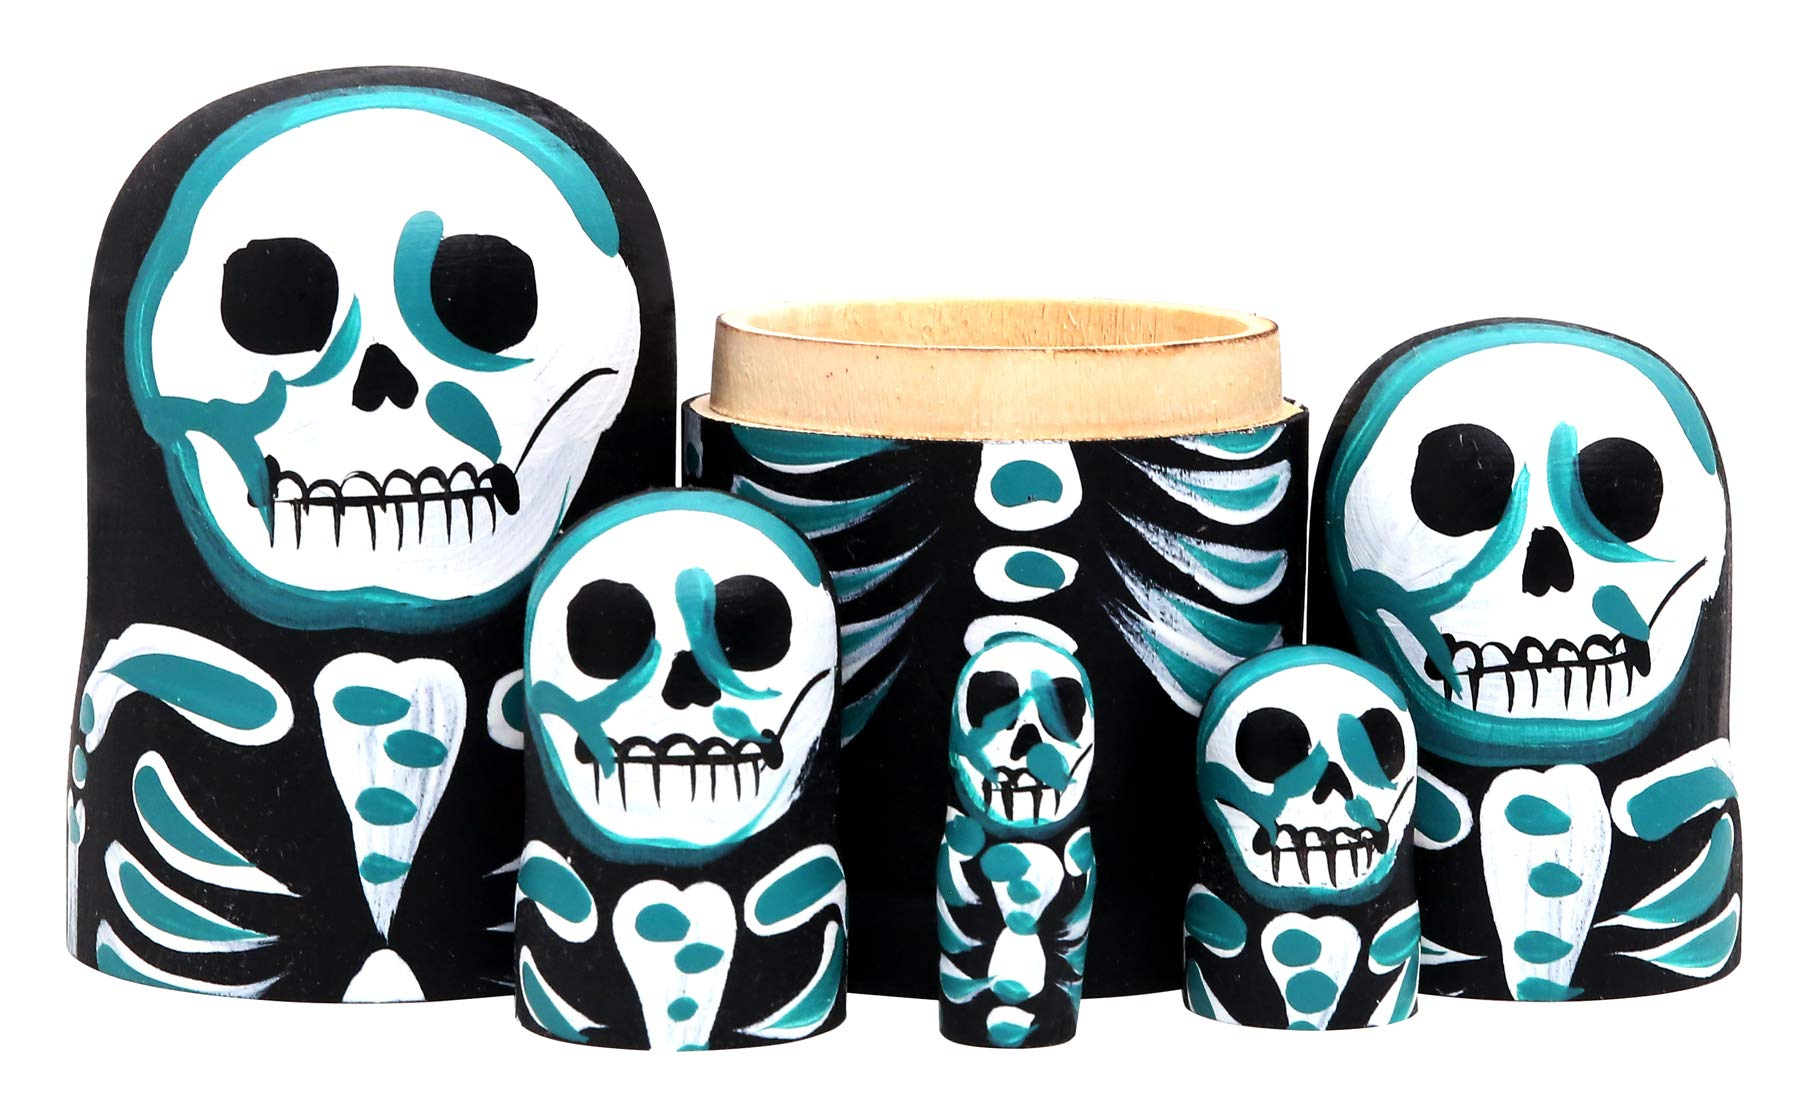 Debbieicy 5Pcs Beautiful Handmade Wooden Russian Nesting Dolls Skull Matryoshka dolls Gift for Halloween and Birthday - Stacking Doll Set of 5 From 6.3'' Tall by Debbieicy (Image #4)